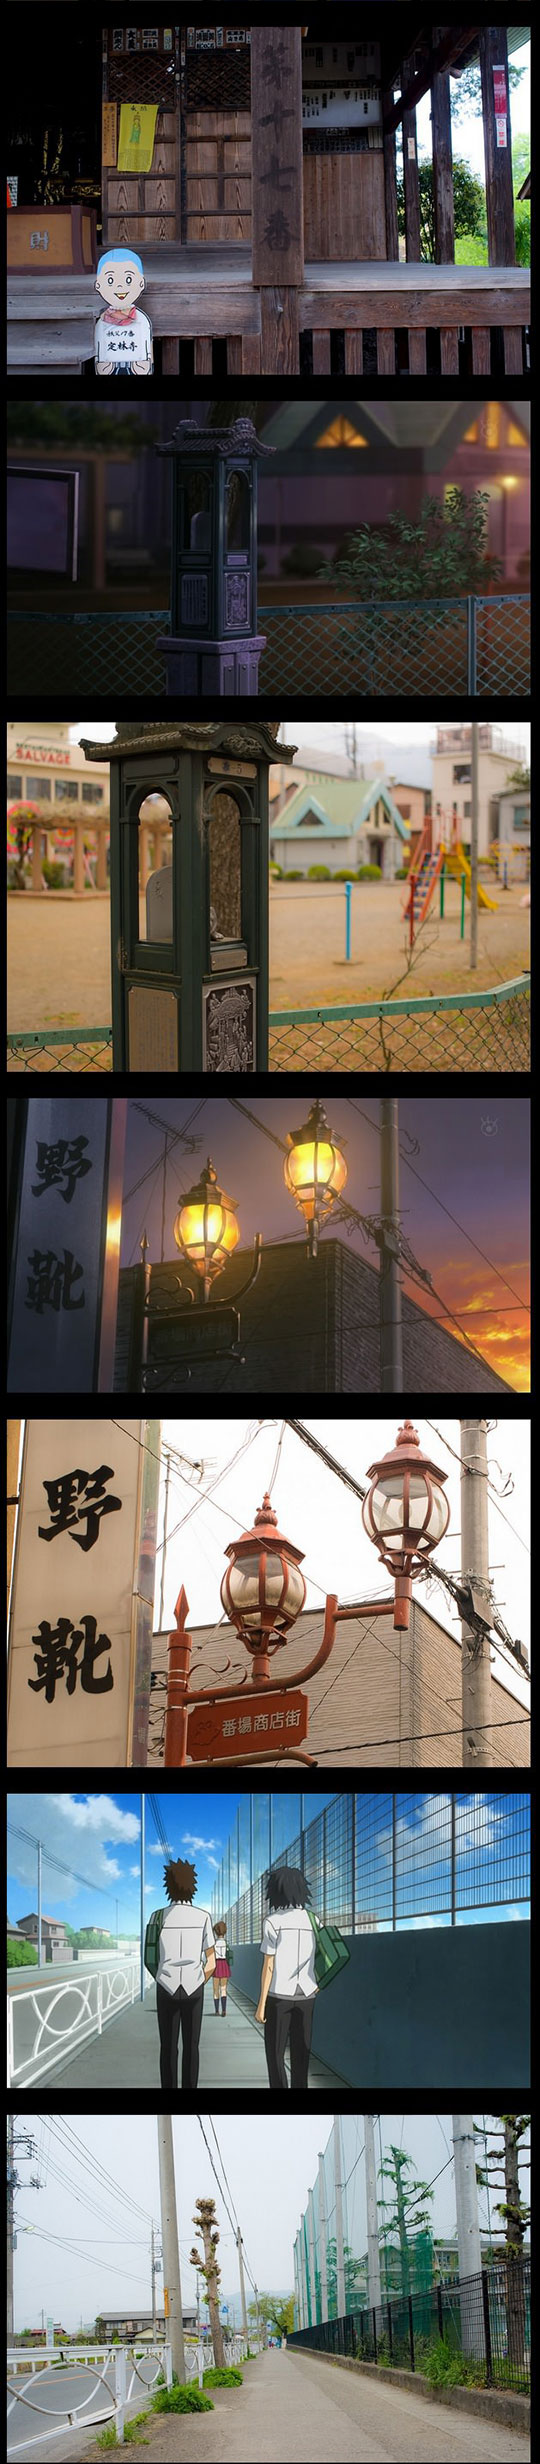 cool-anime-vs-real-life-places-city-similar